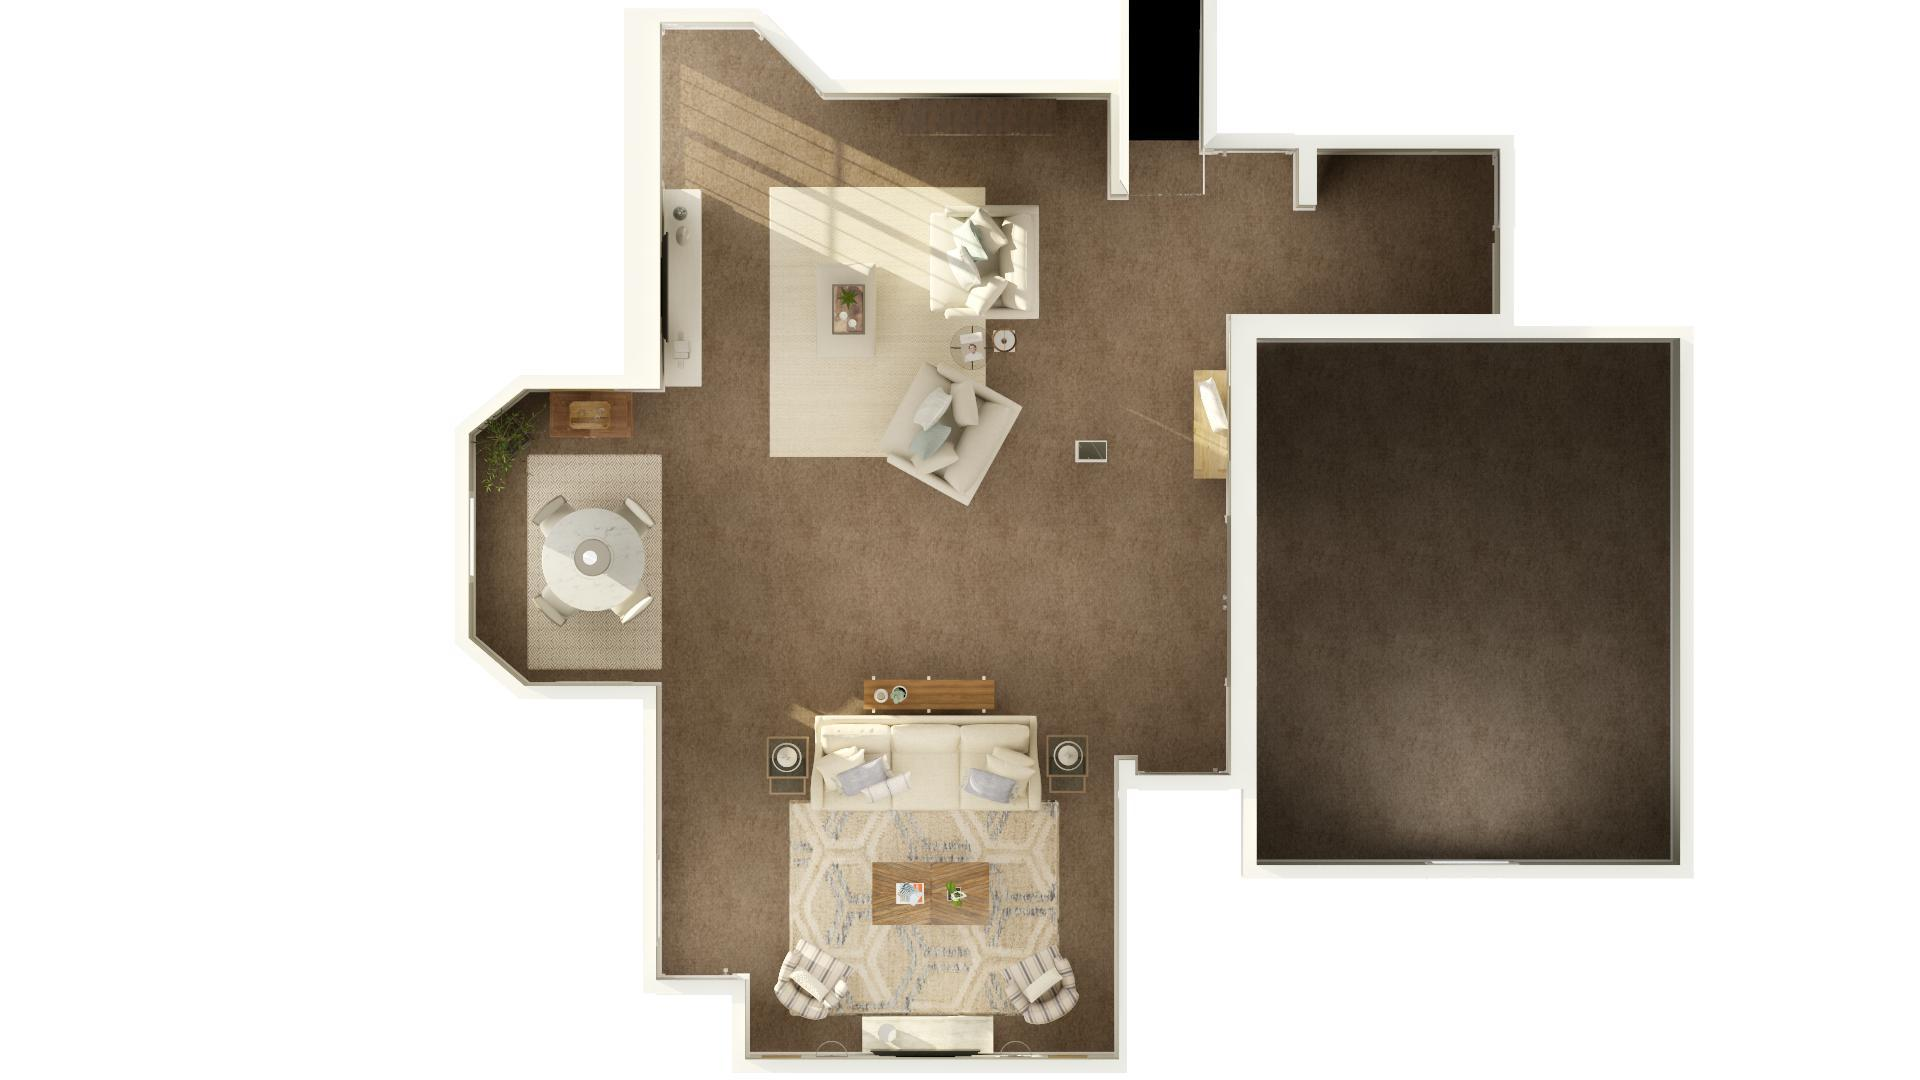 Finished Basement Ideas 3 Amazing Basement Floor Plans For Casual Entertaining